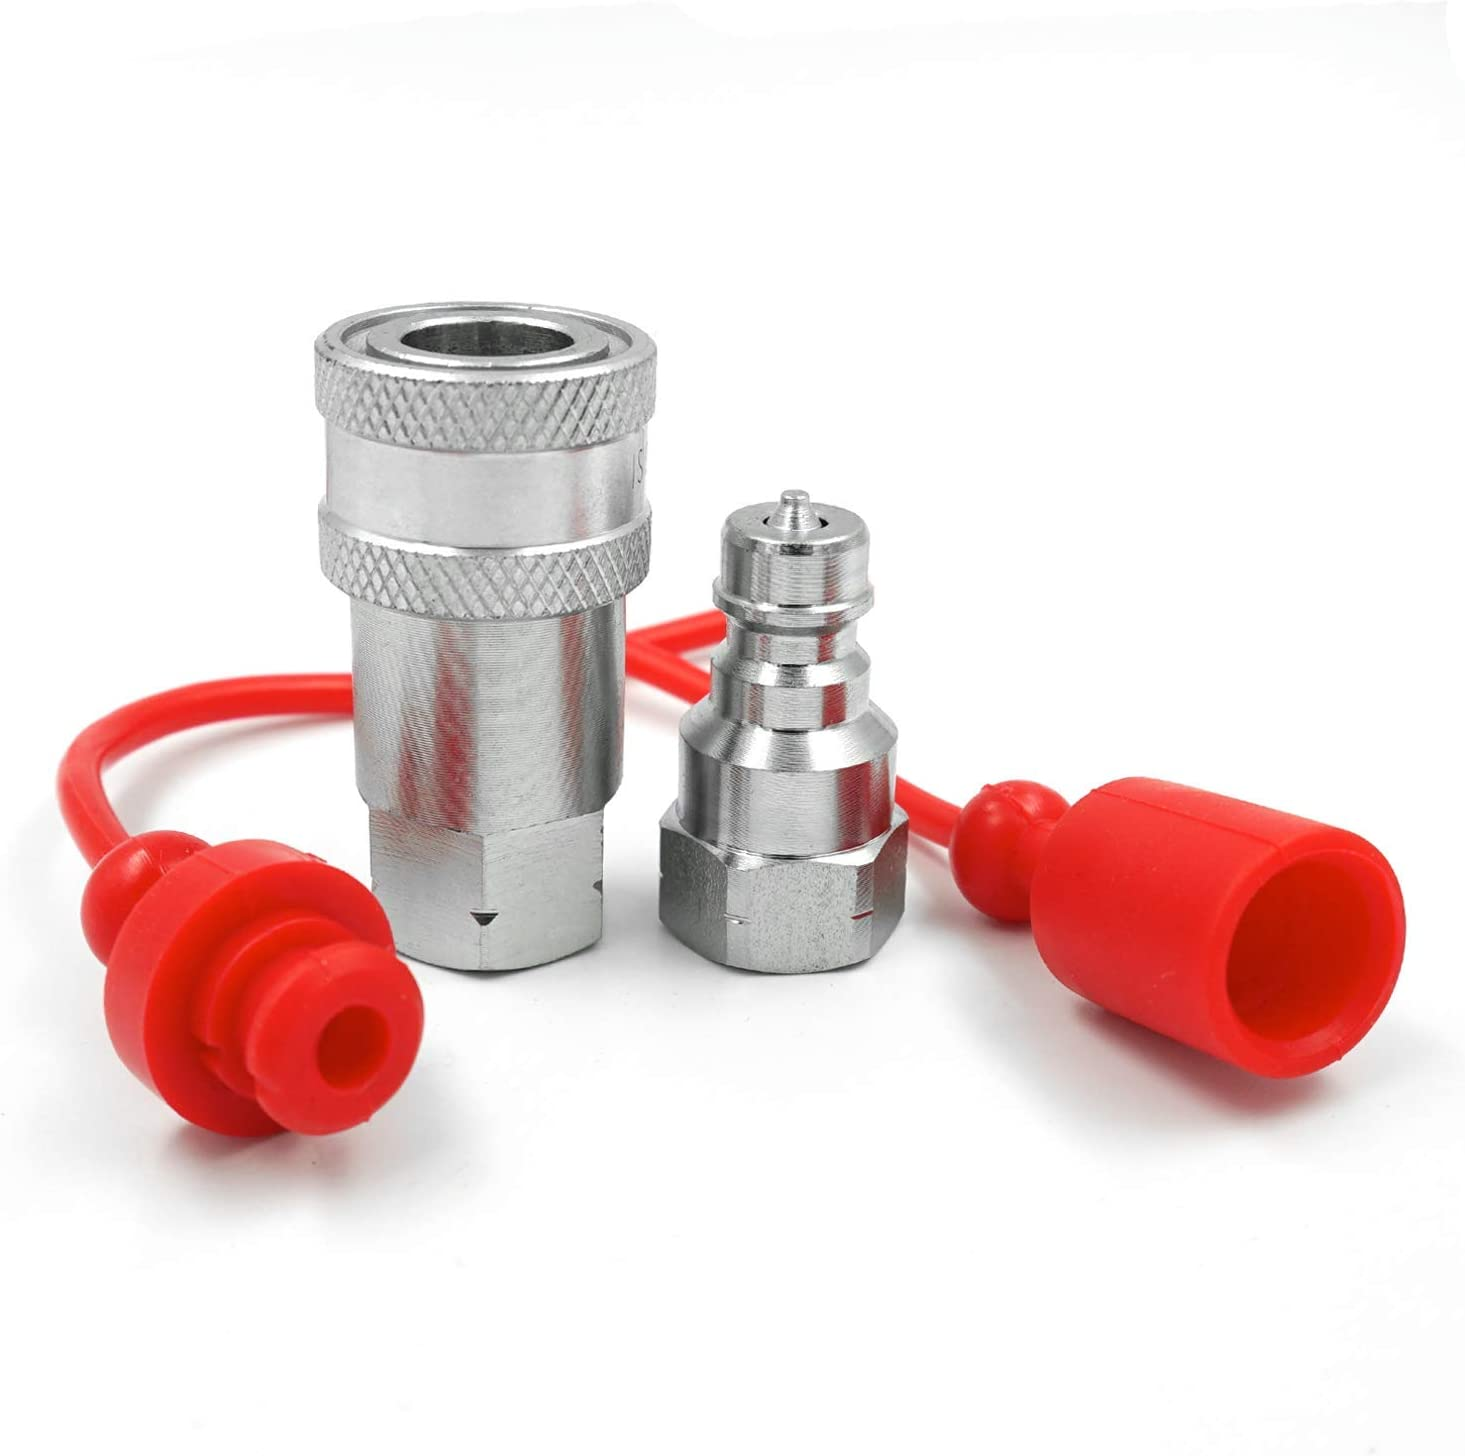 1//4 NPT Thread ISO A Hydraulic Quick Connect Coupling Coupler with Dust Caps